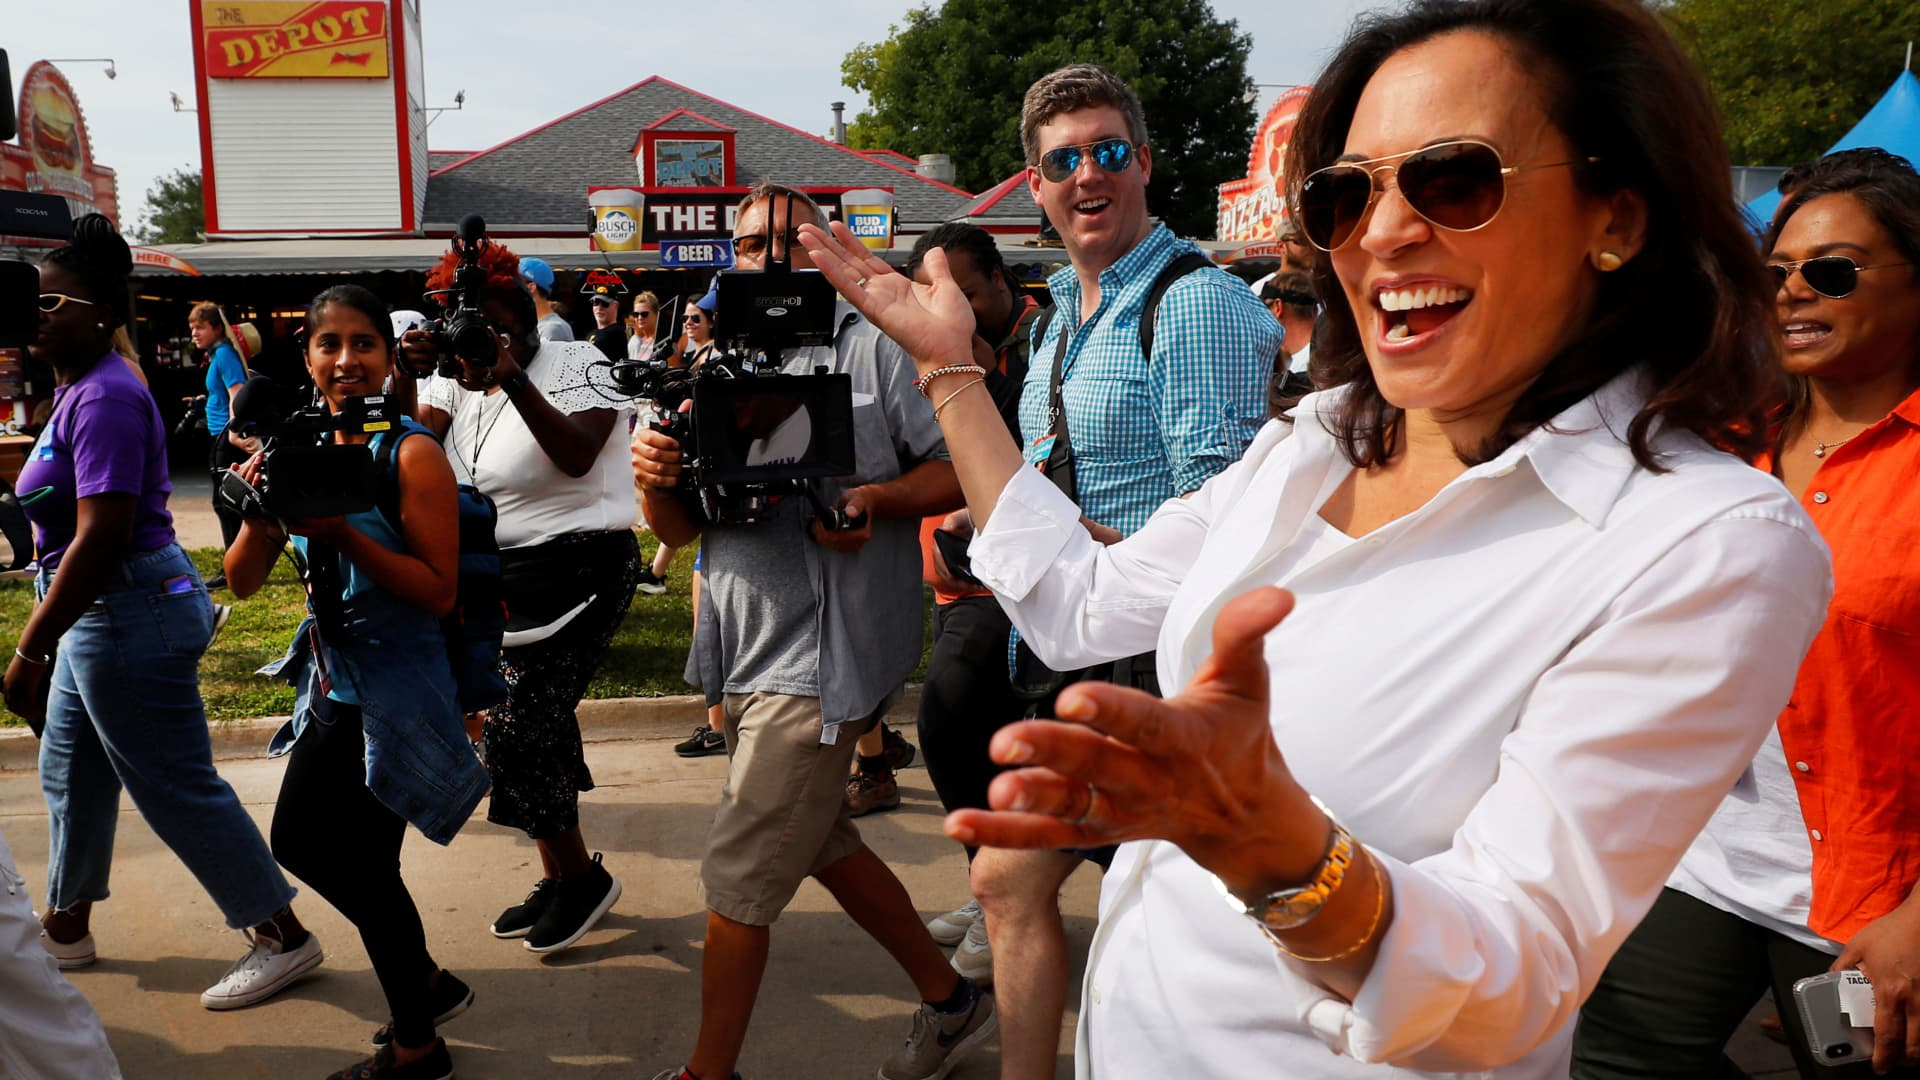 2020 U.S. Democratic presidential candidate and U.S. Senator Kamala Harris (D-CA) arrives at the Iowa State Fair in Des Moines, Iowa, August 10, 2019.